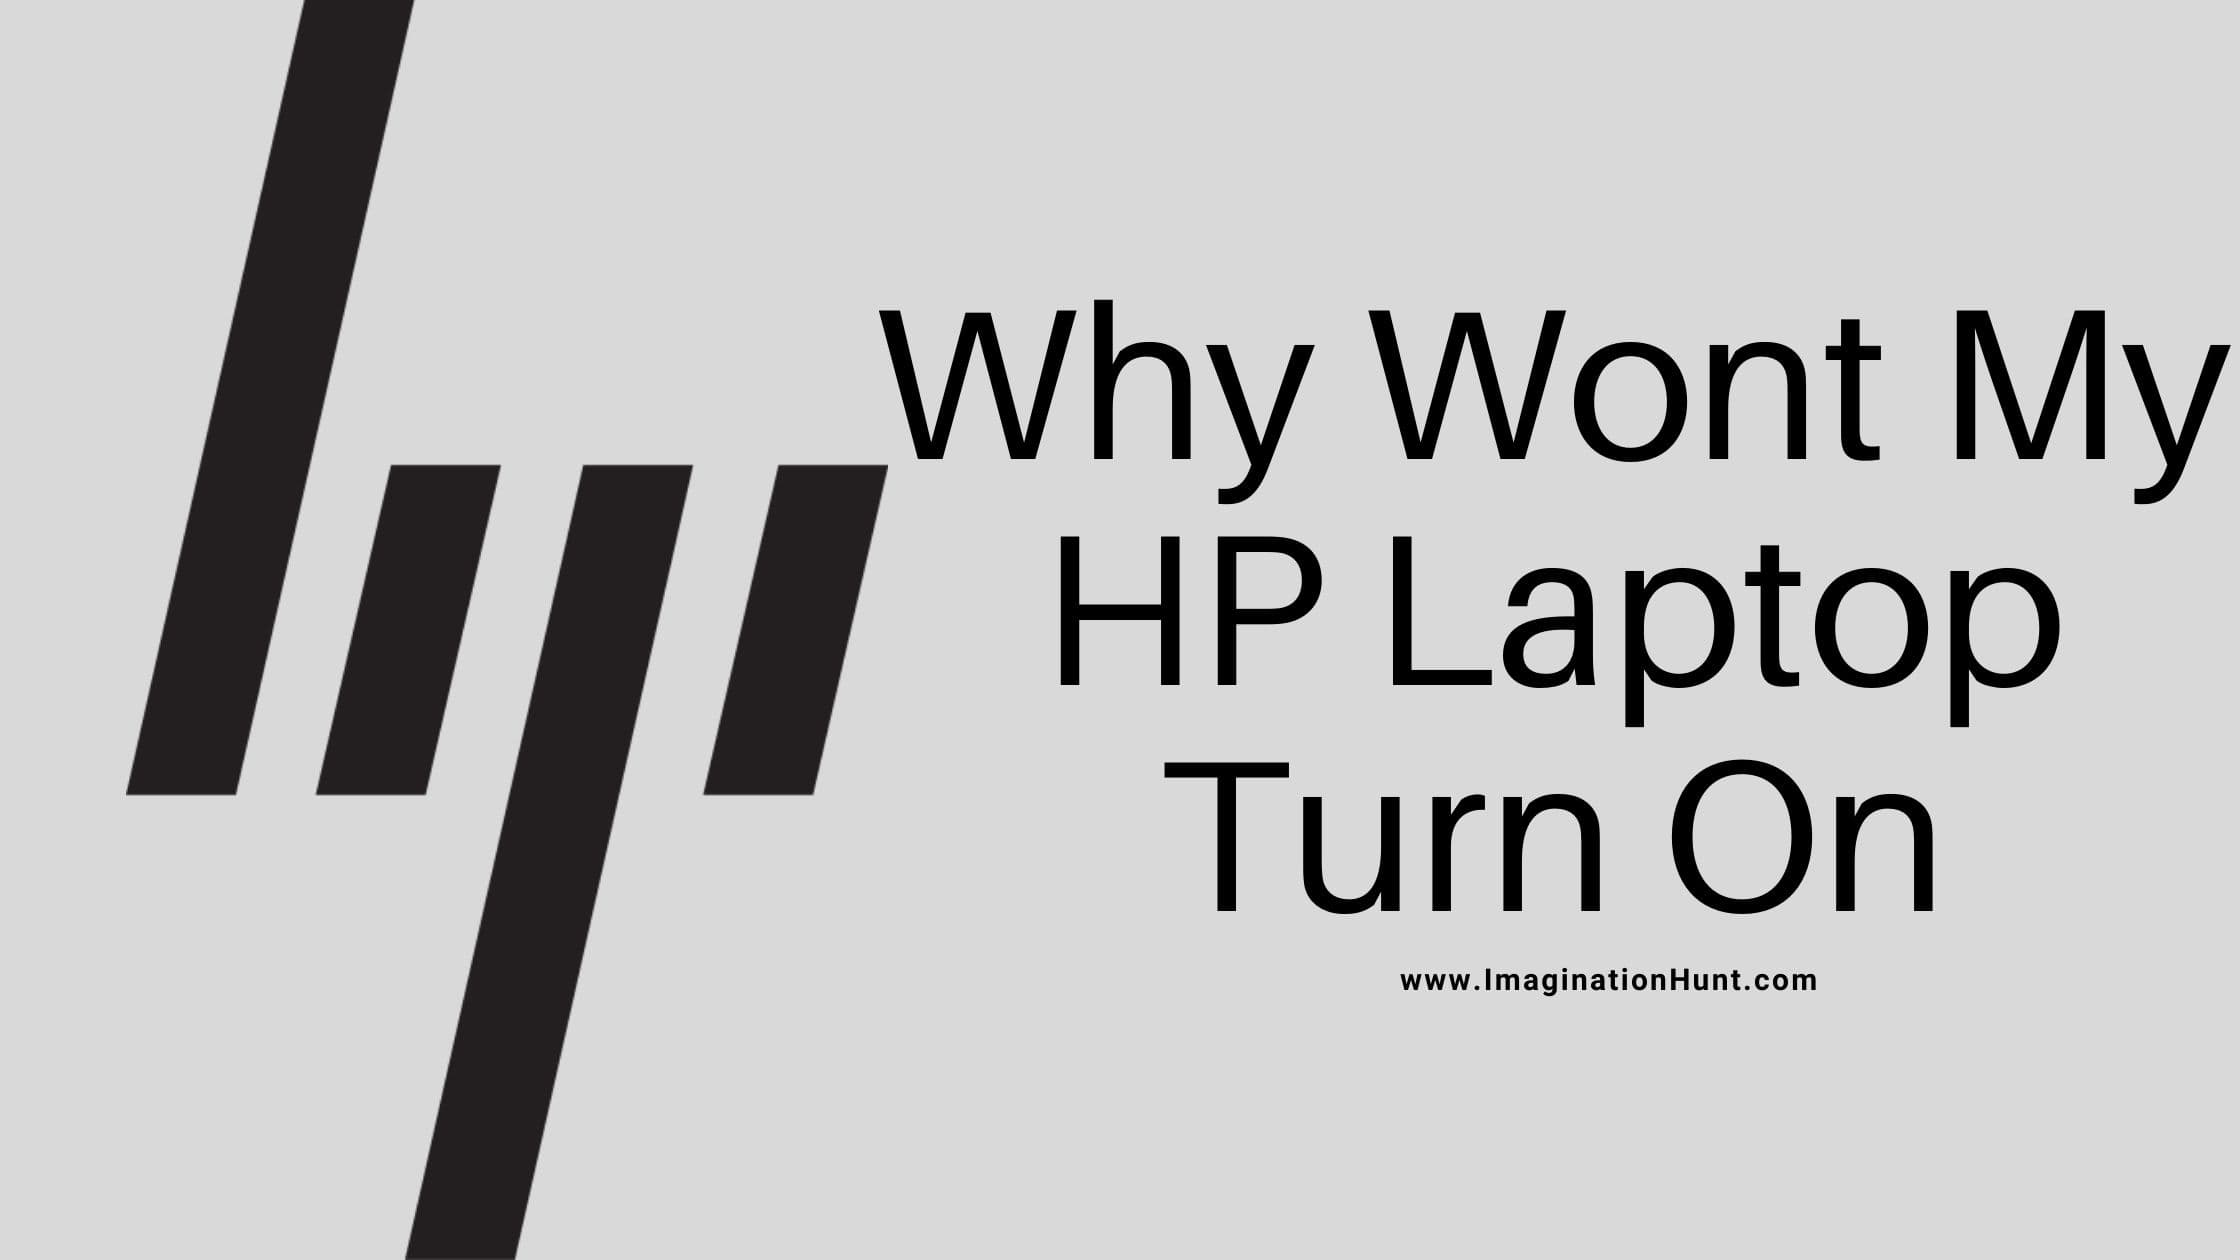 Why Wont My HP Laptop Turn On